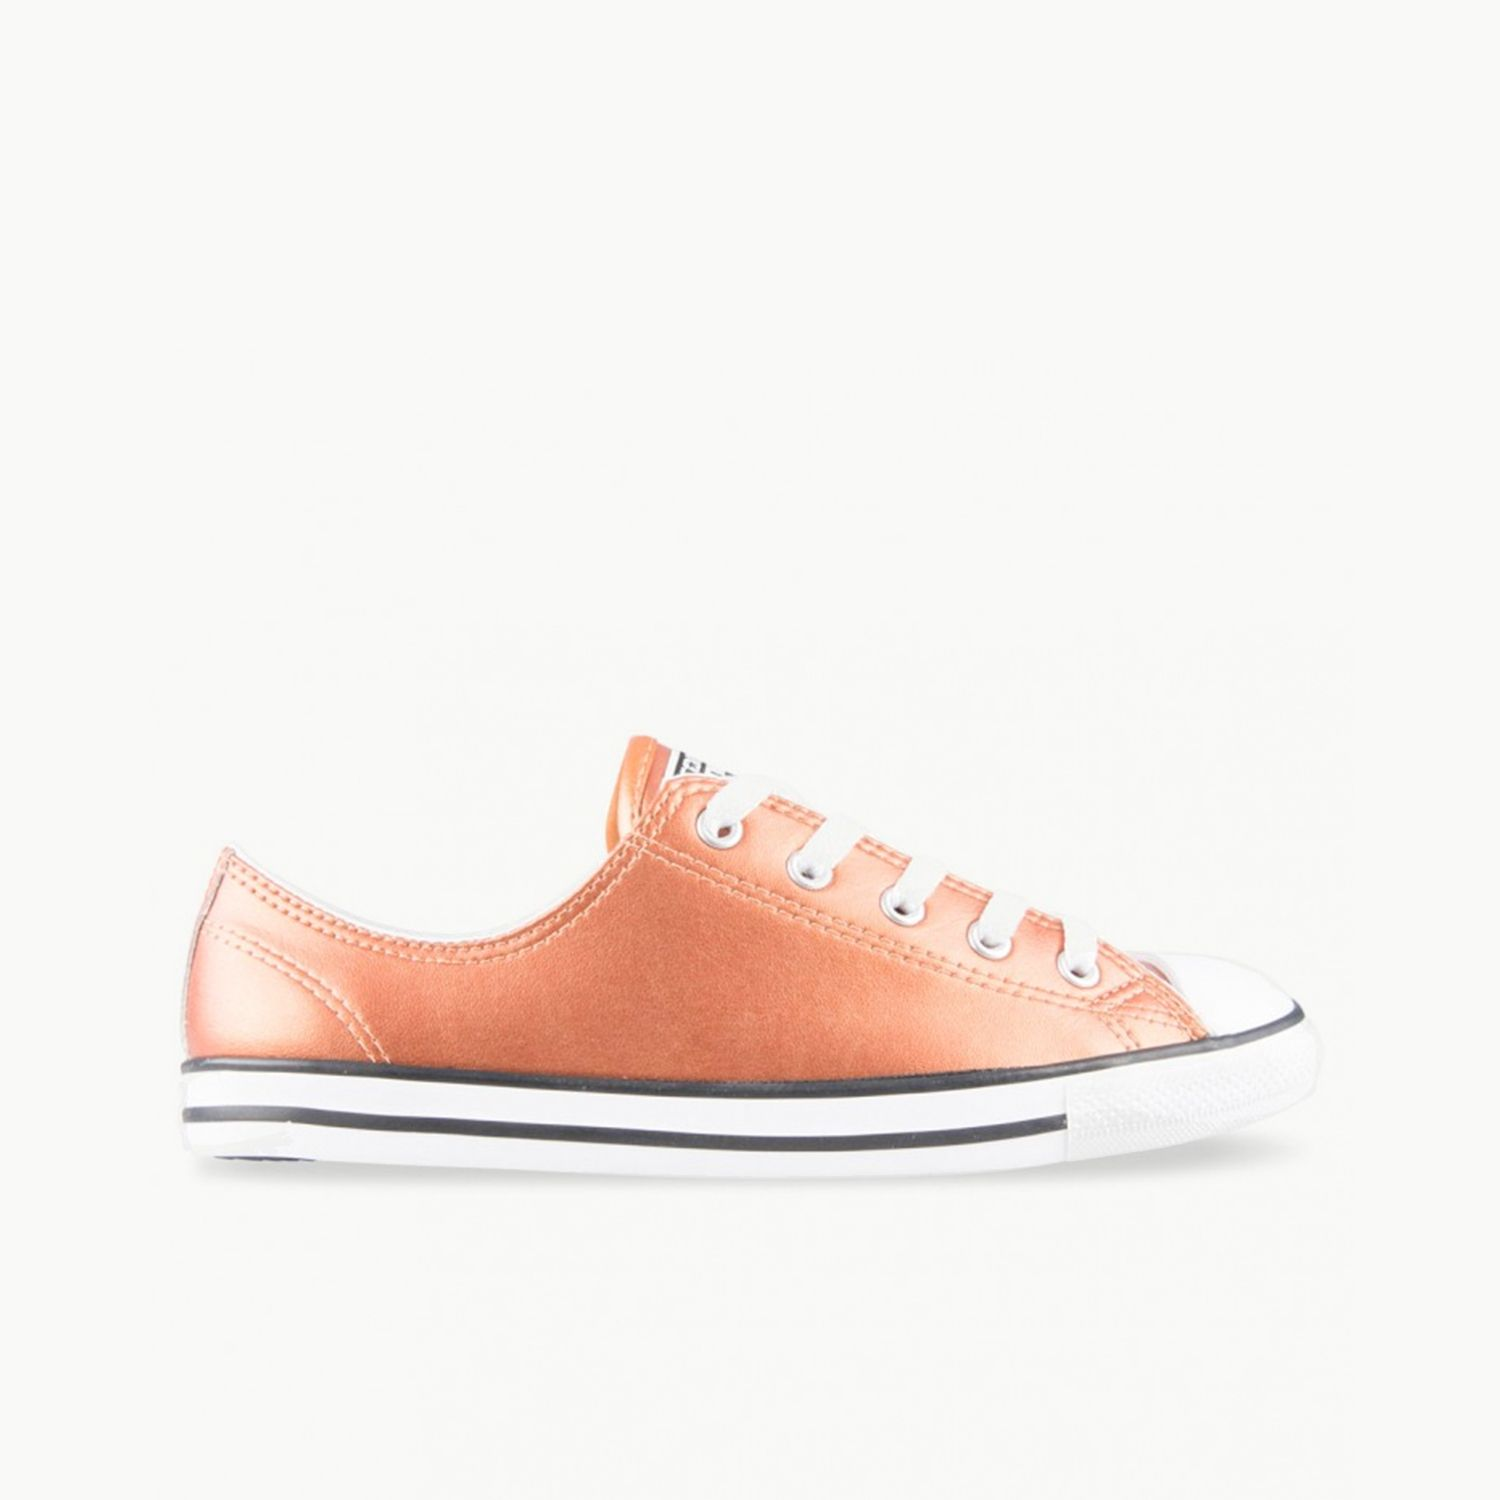 CONVERSE ALL STAR DAINTY OX | Available